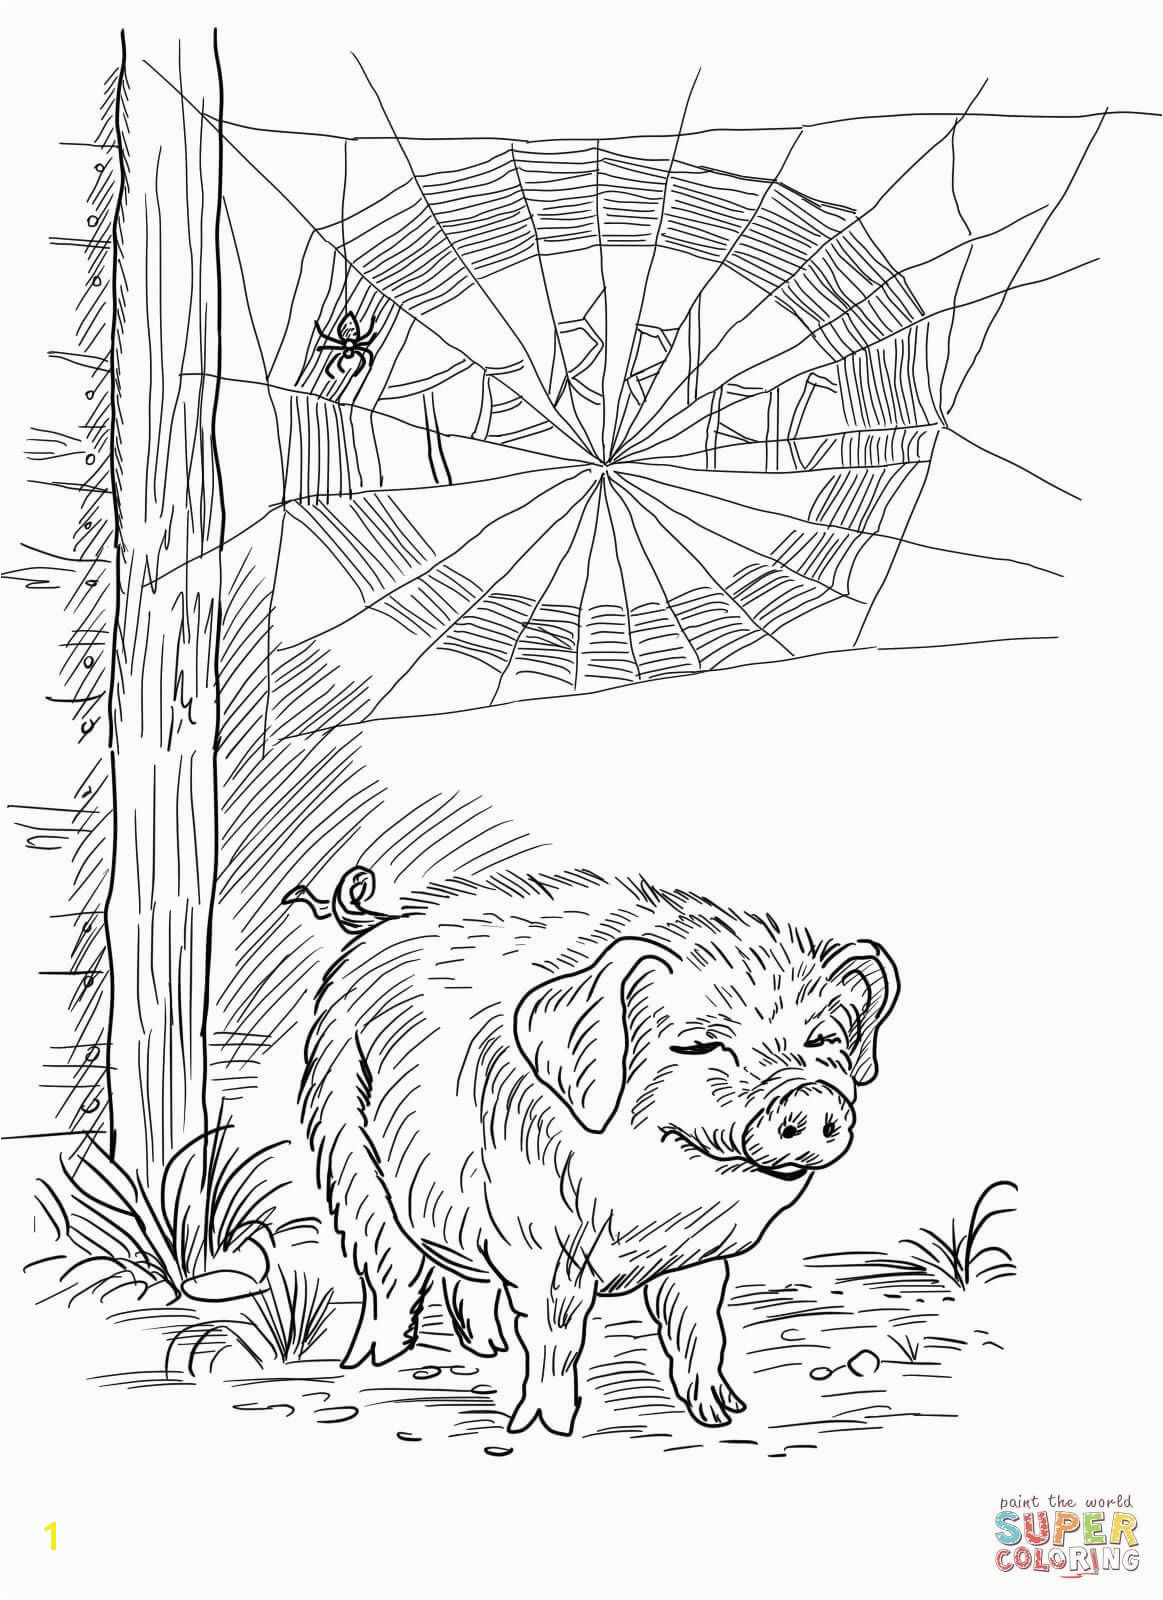 Wilbur the Pig Coloring Page Awesome ¨°'€ ¾'''